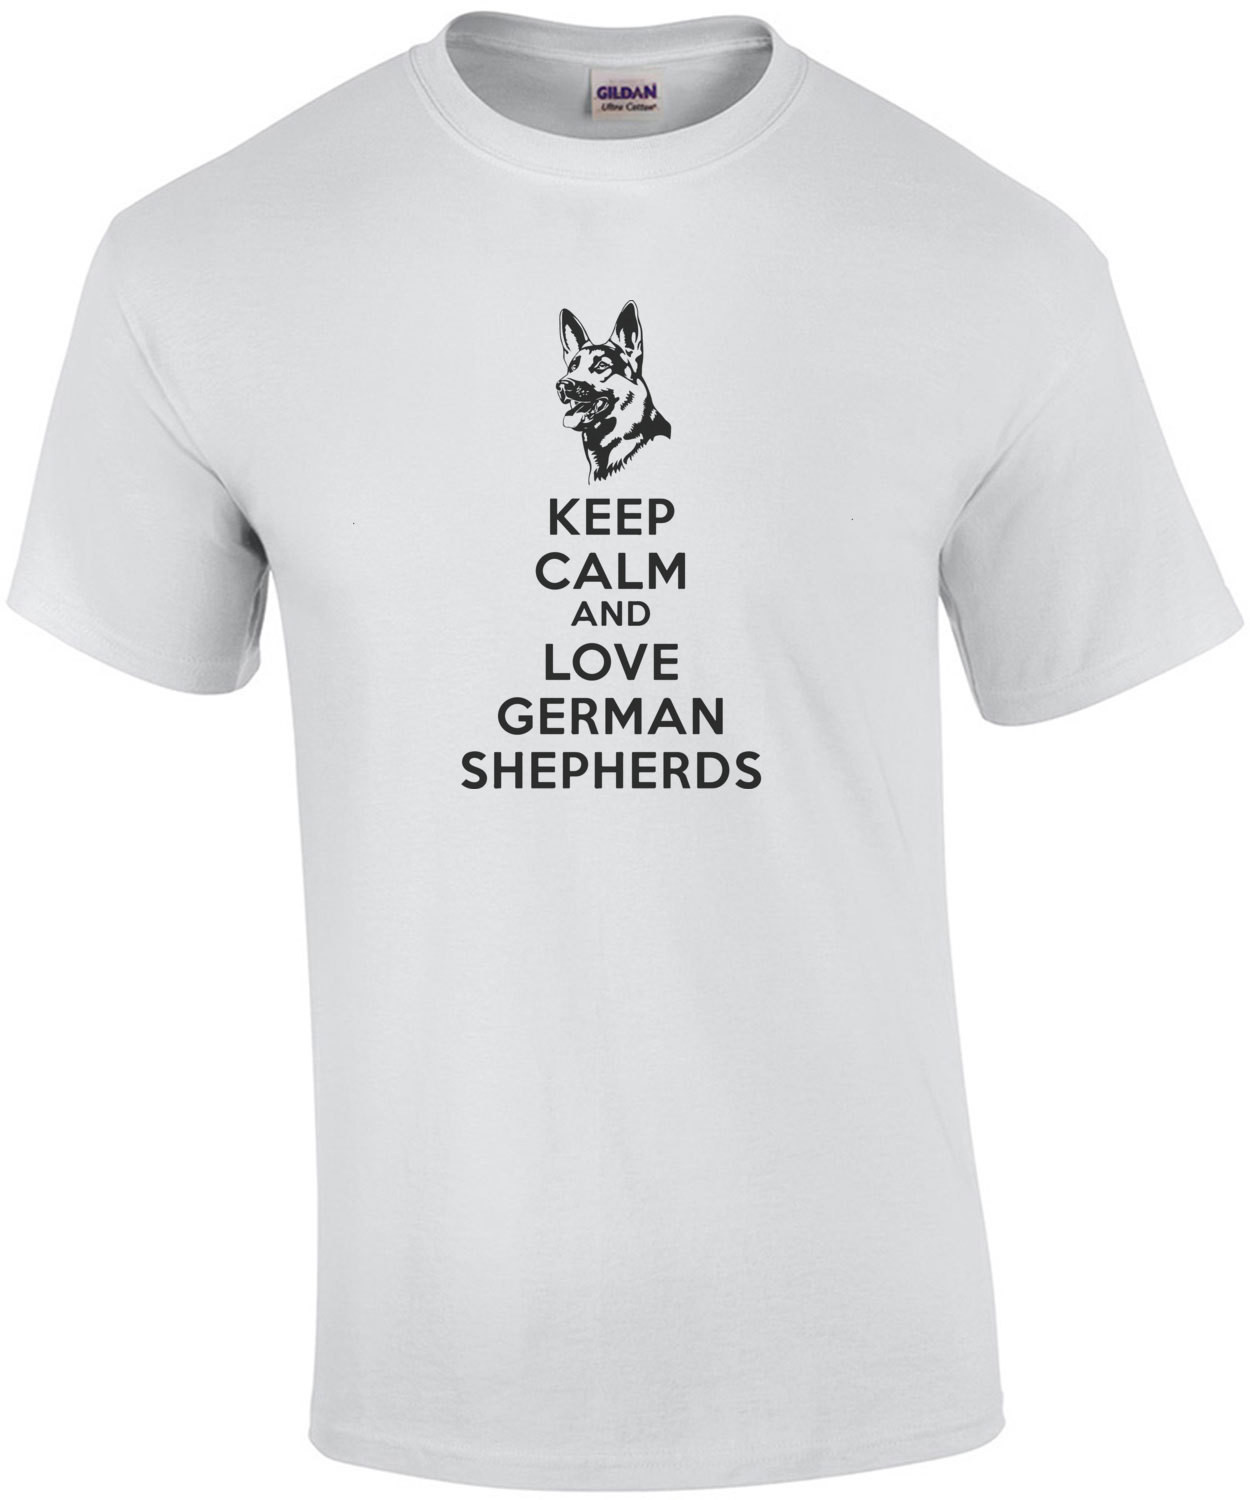 Keep Calm and Love German Shepherds - German Shepherd T-Shirt